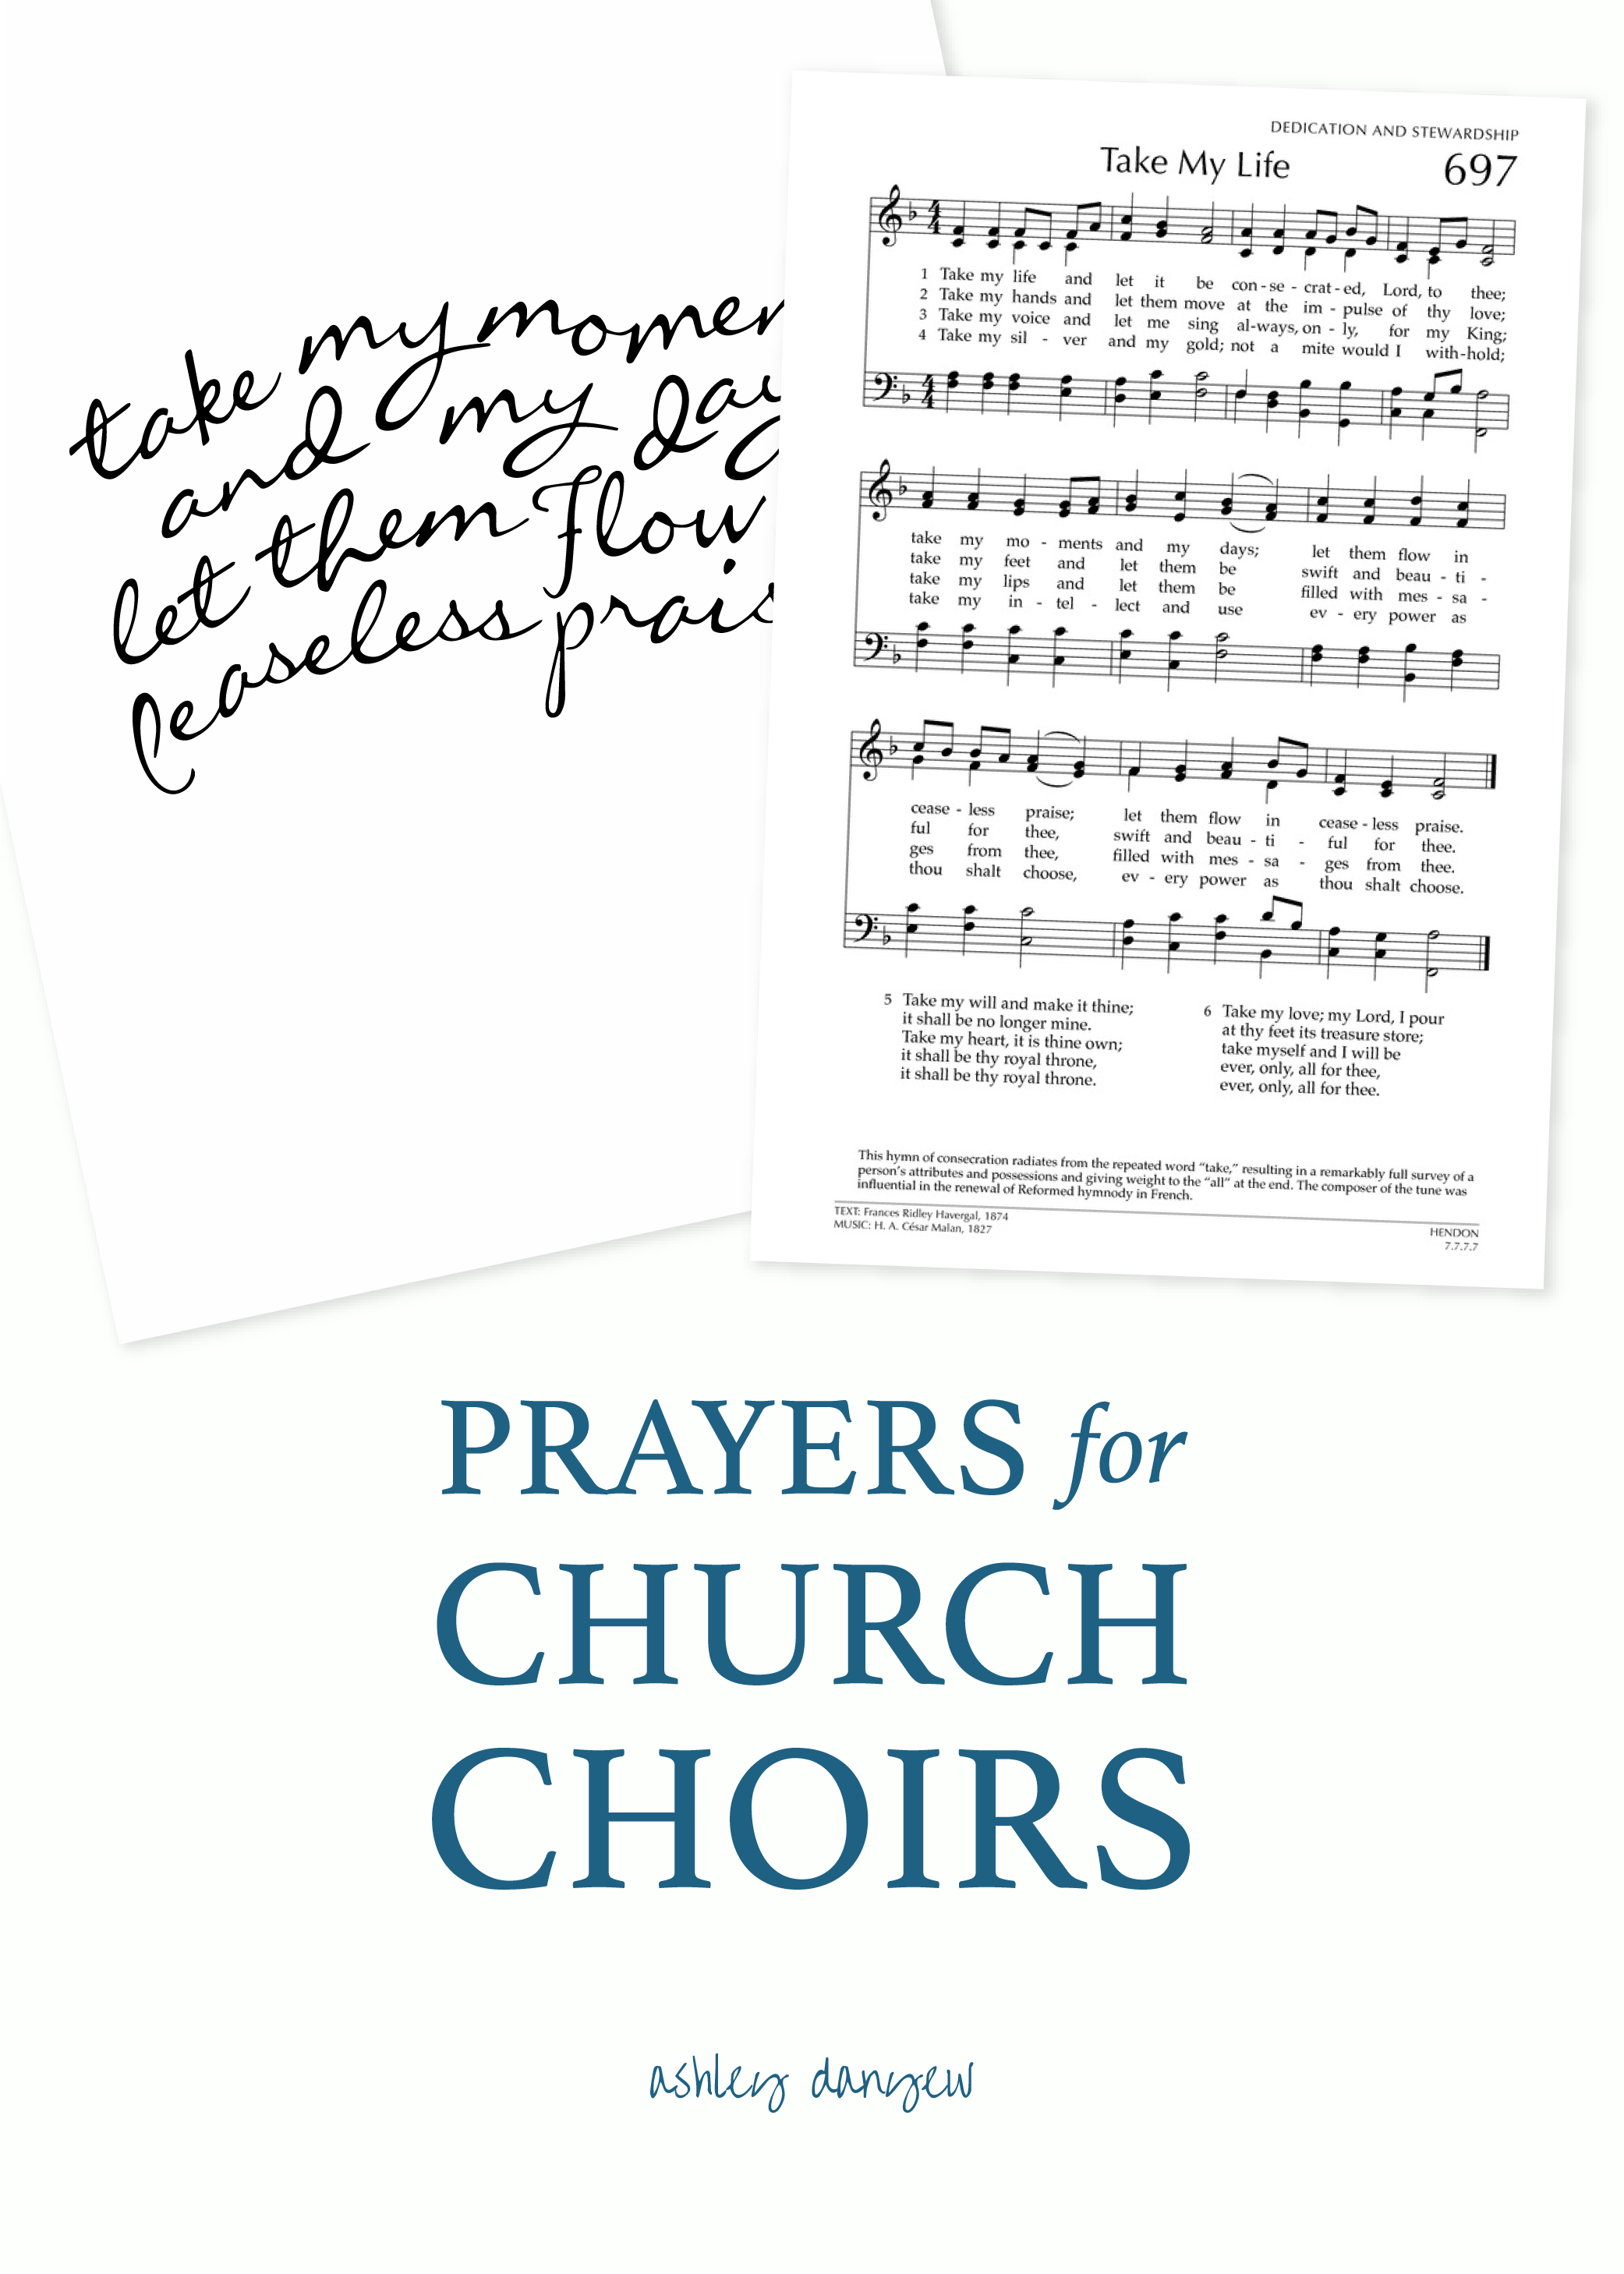 Copy of Prayers for Church Choirs